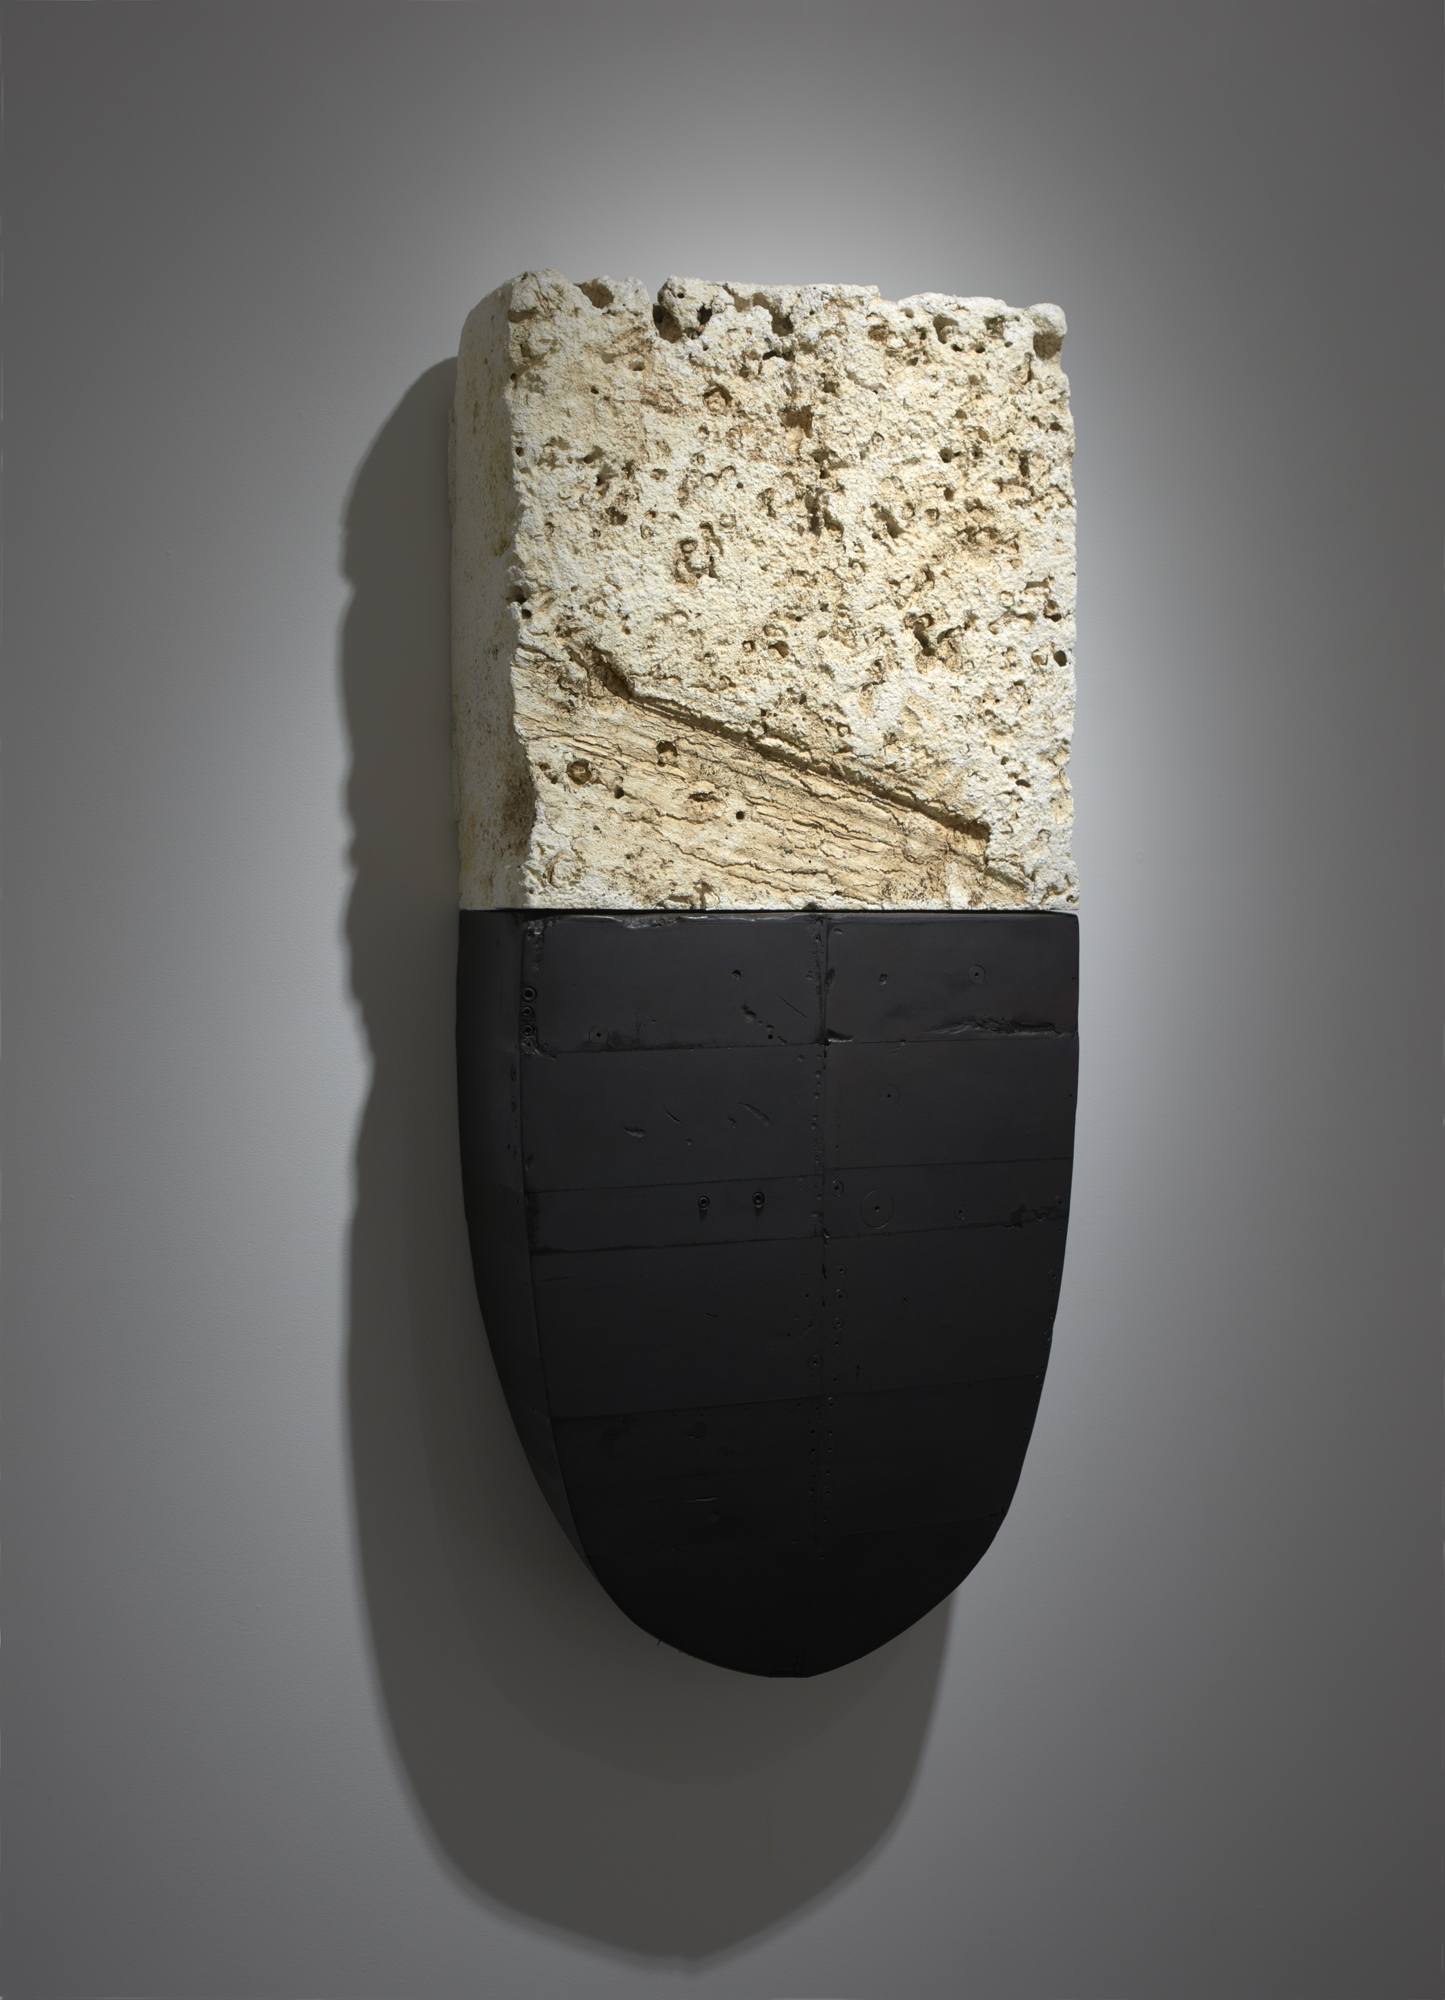 #60, 2006-2008, painted plaster, 38 x 30 x 16 in, $19,500